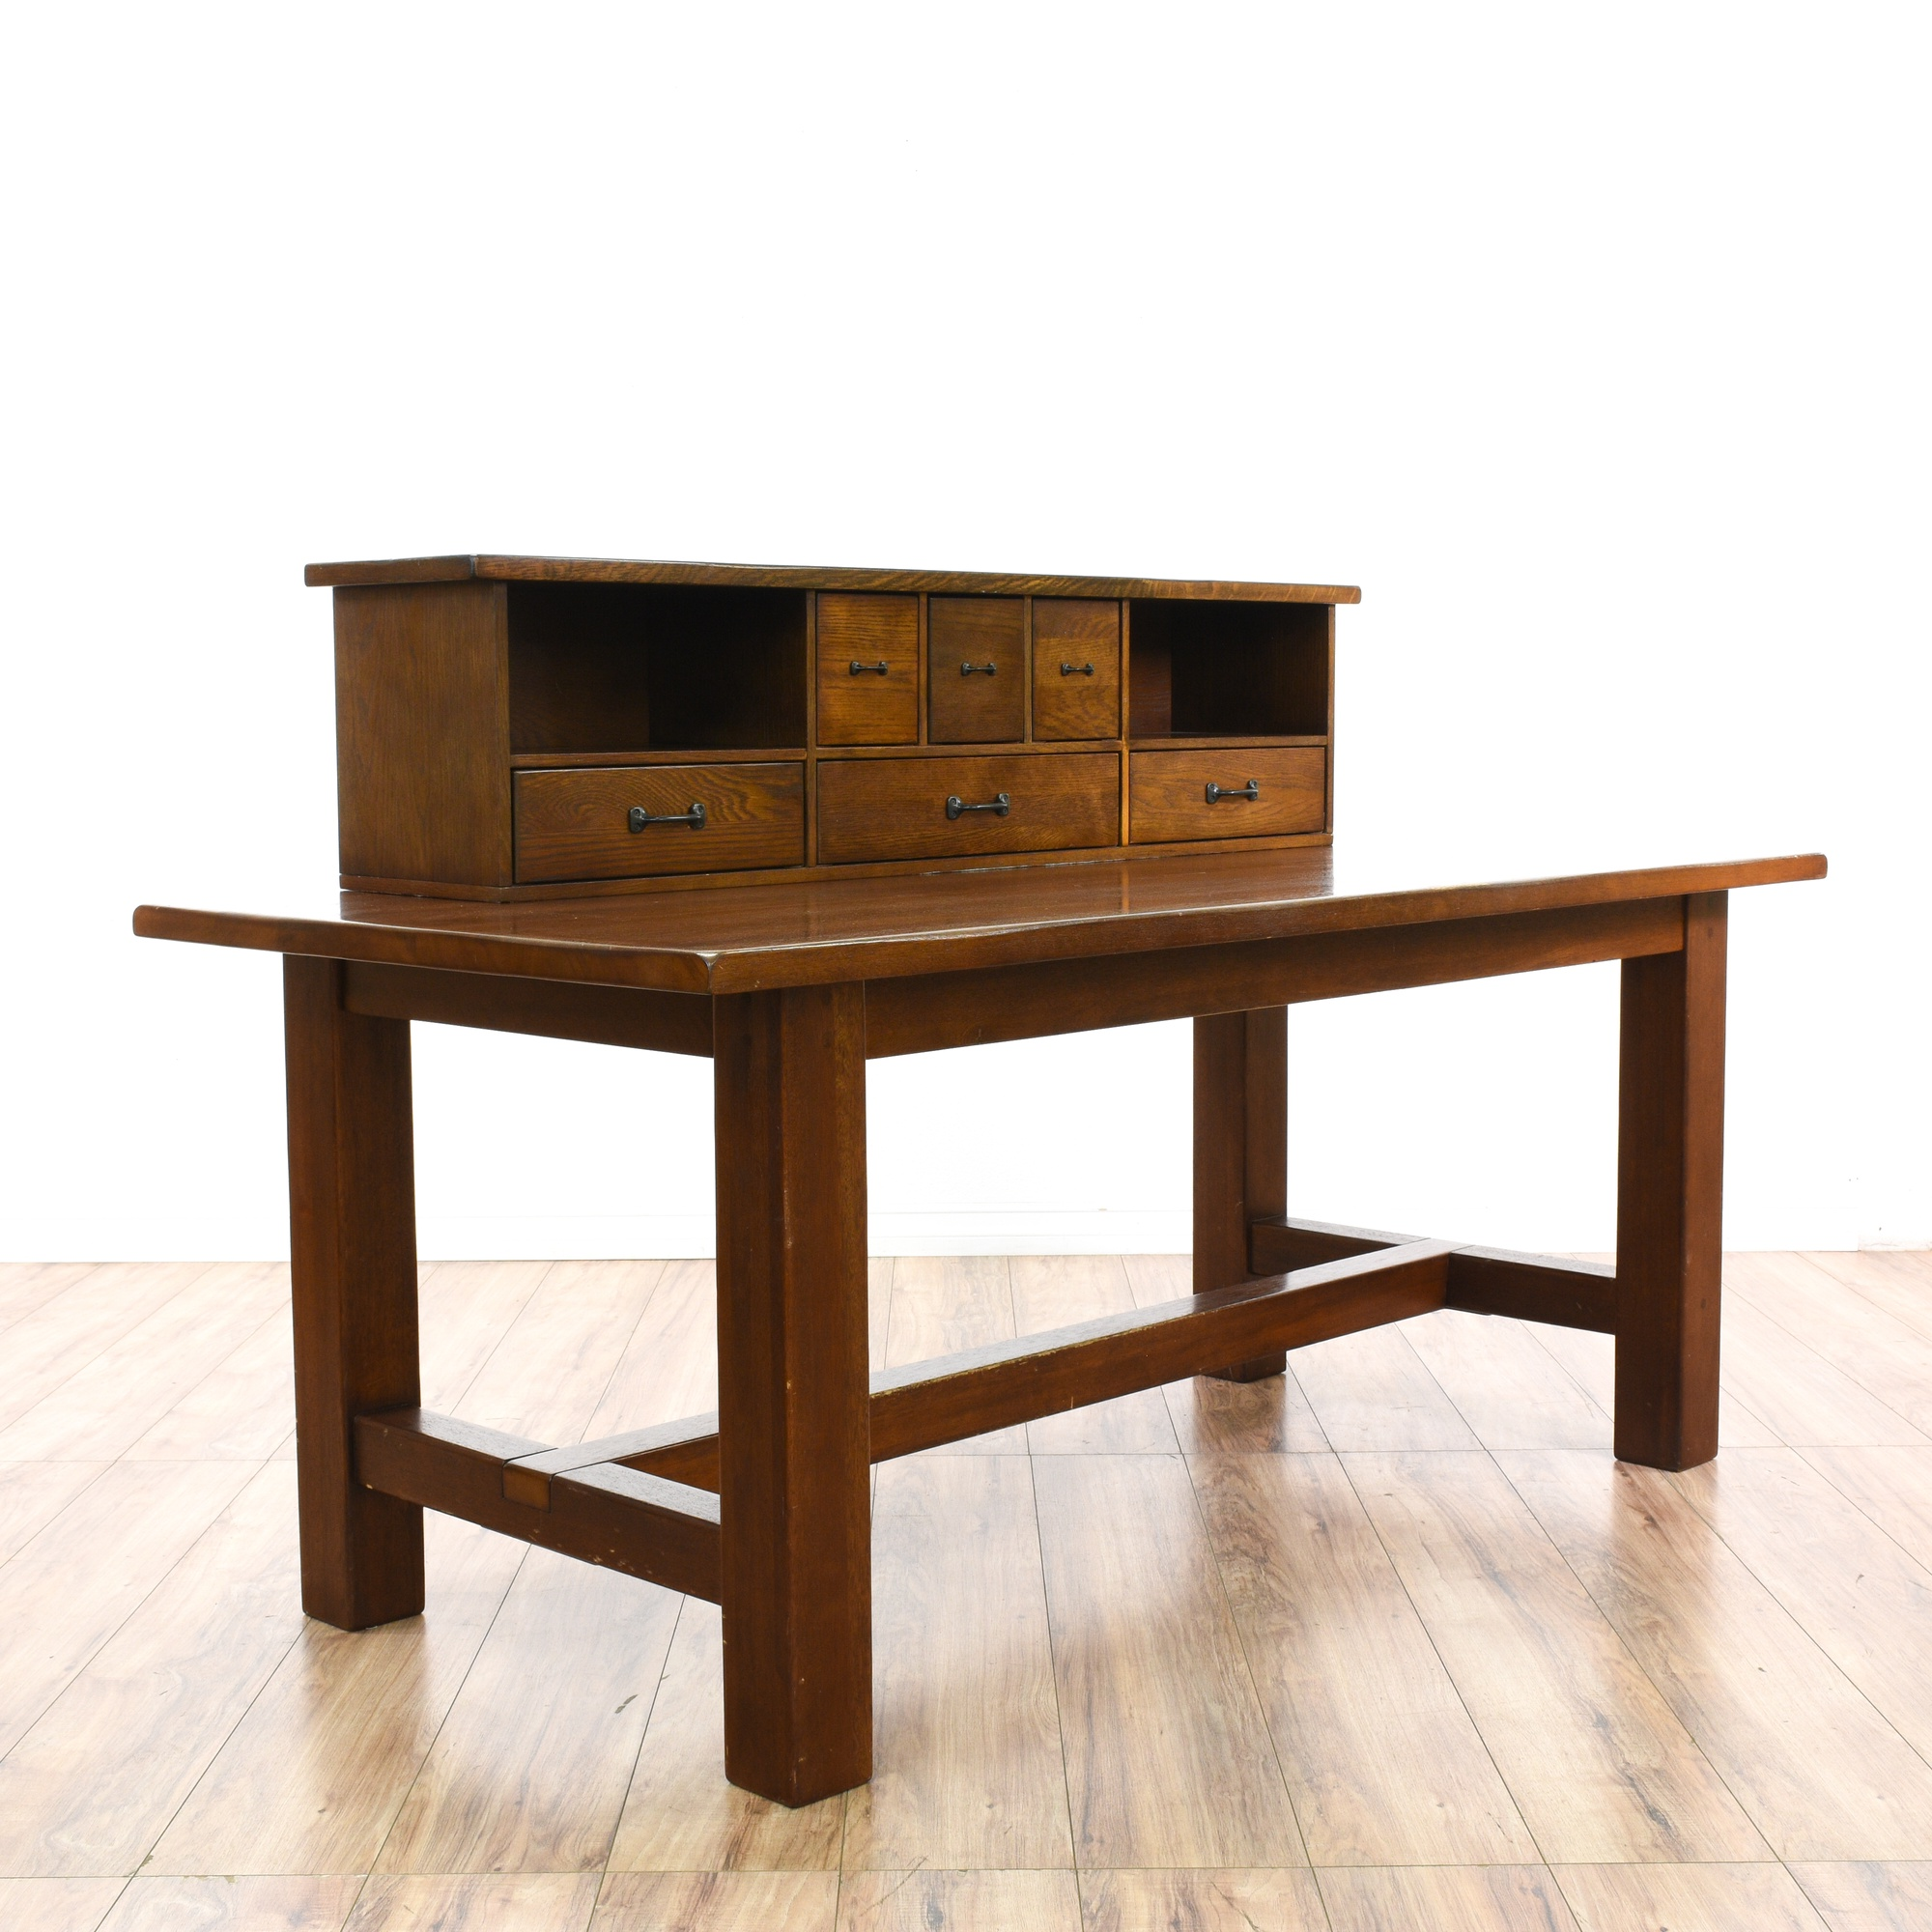 Mission craftsman style desk w hutch organizer loveseat vintage furniture san diego los angeles - Mission style computer desk with hutch ...